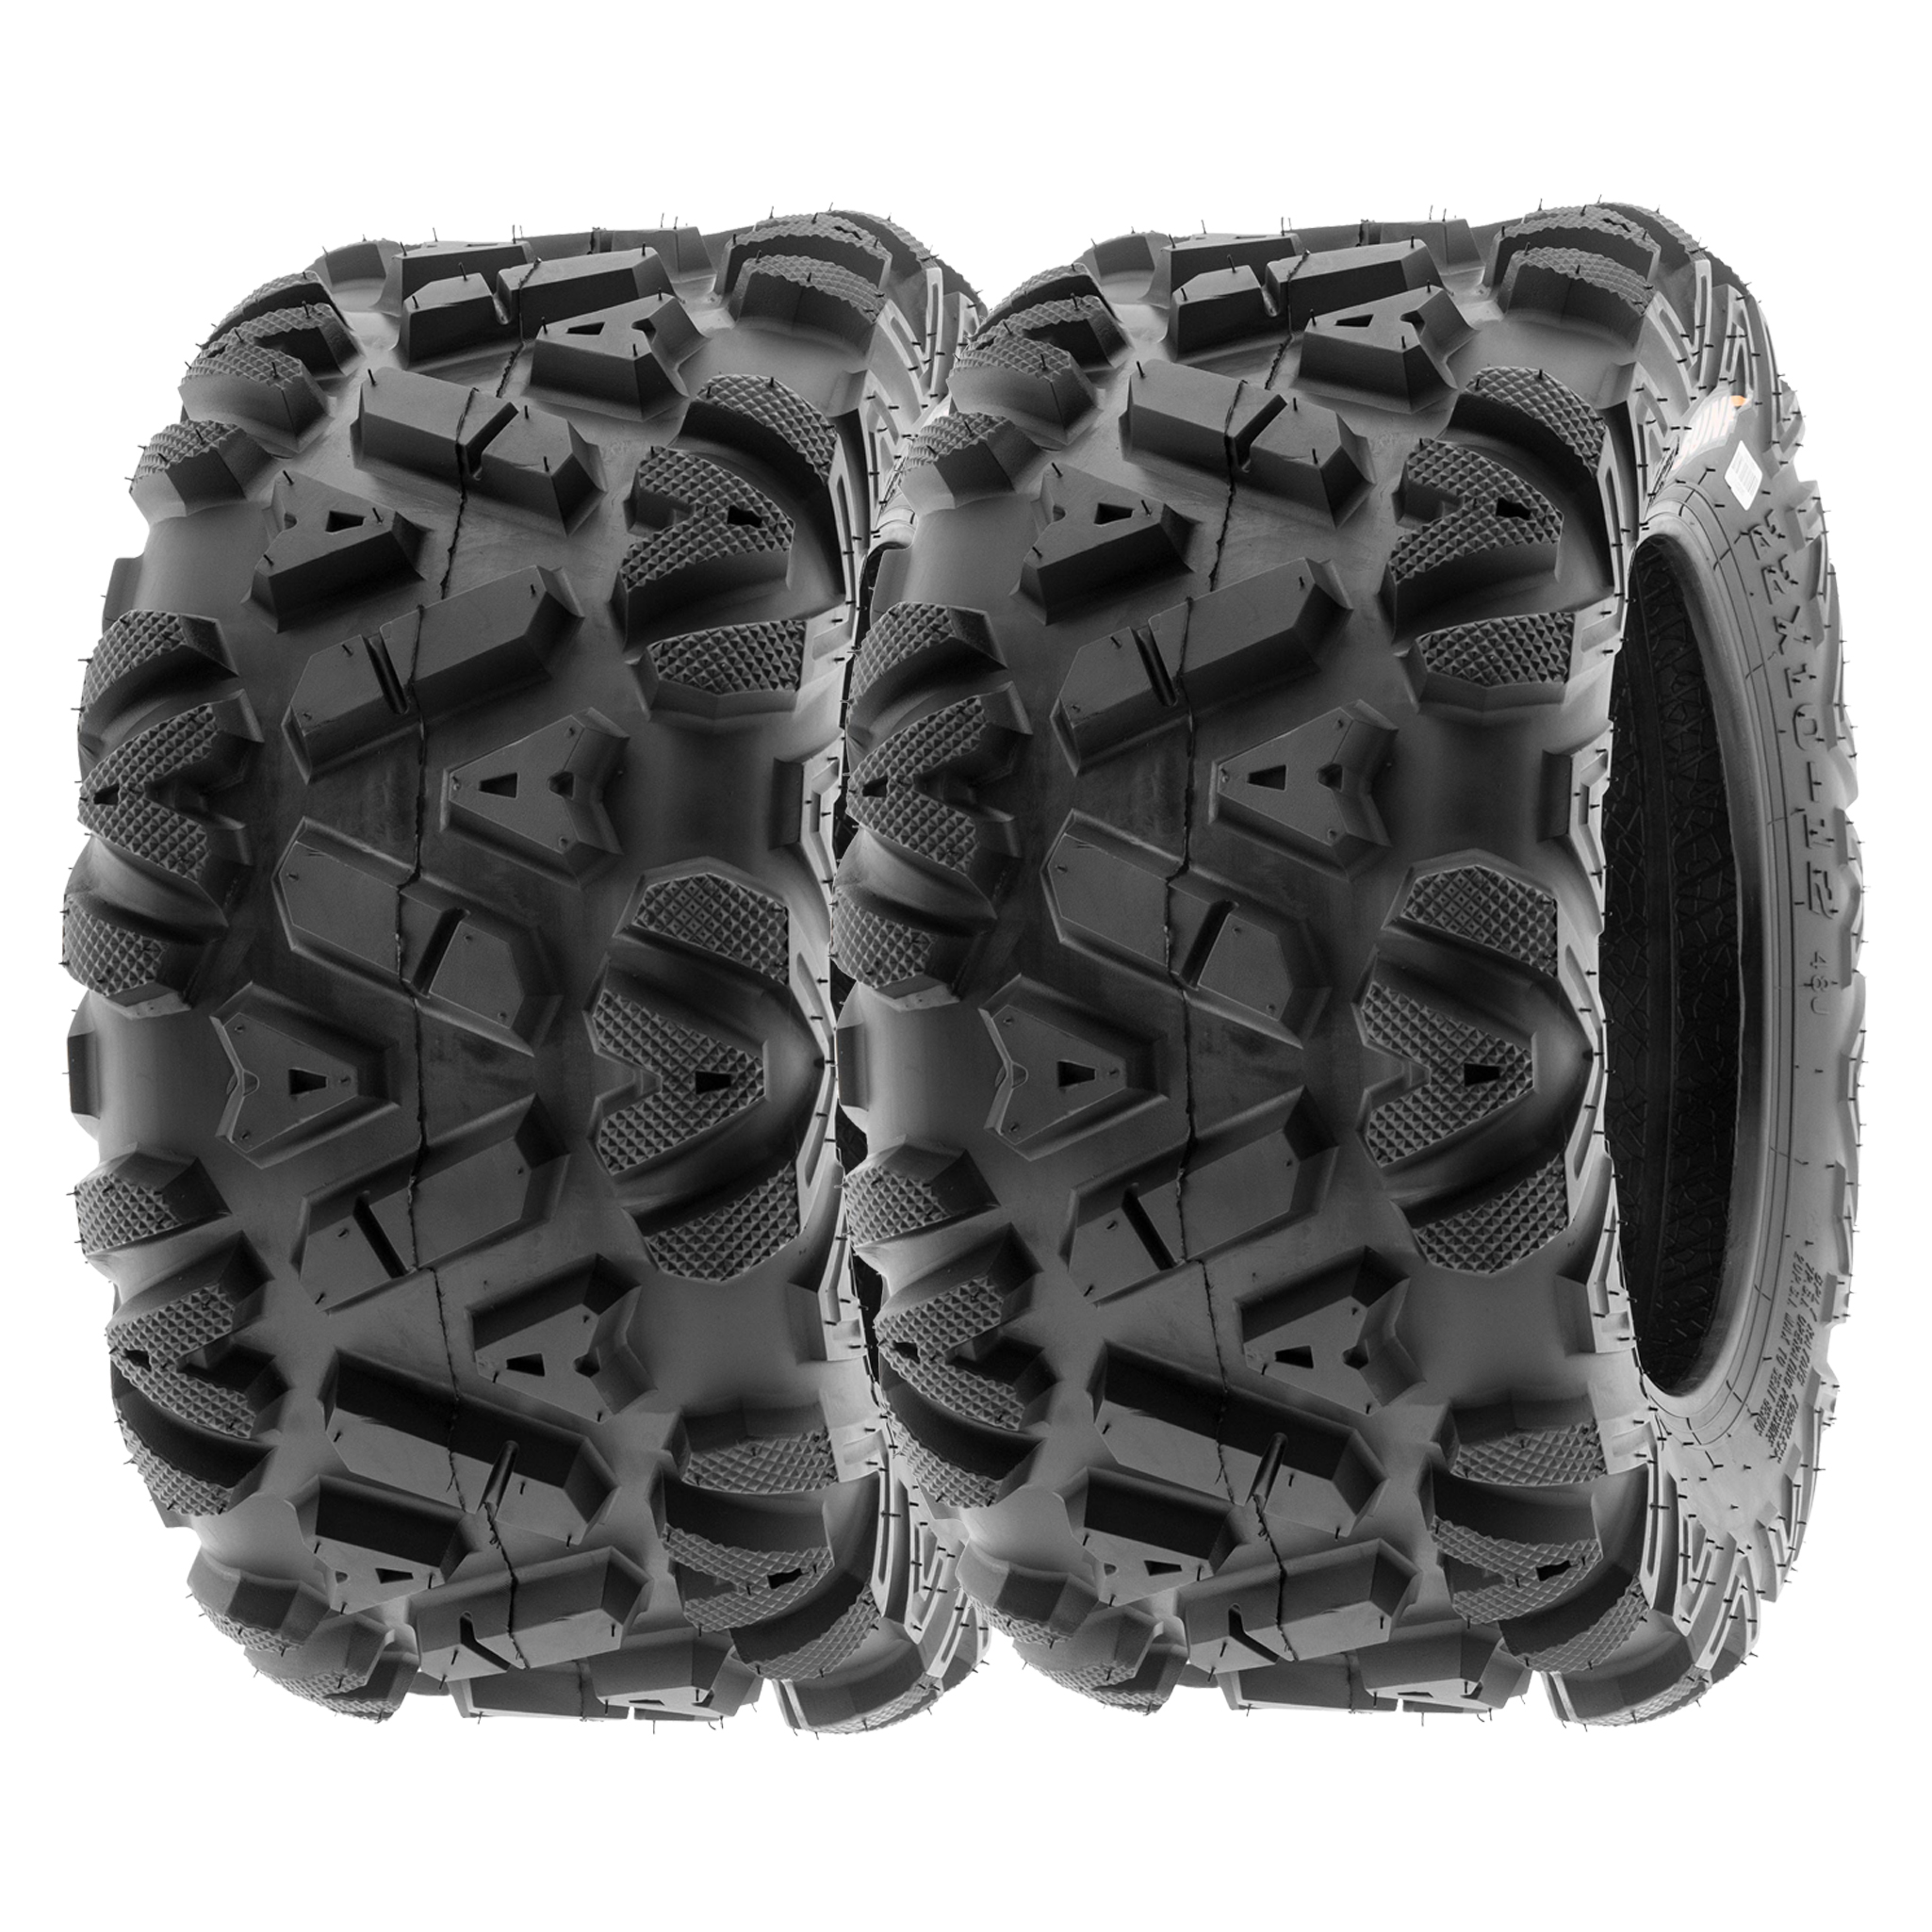 Set of 2 SunF Tubeless ATV Tires 19x7-8 19x7x8 All Terrain 6 Ply A027